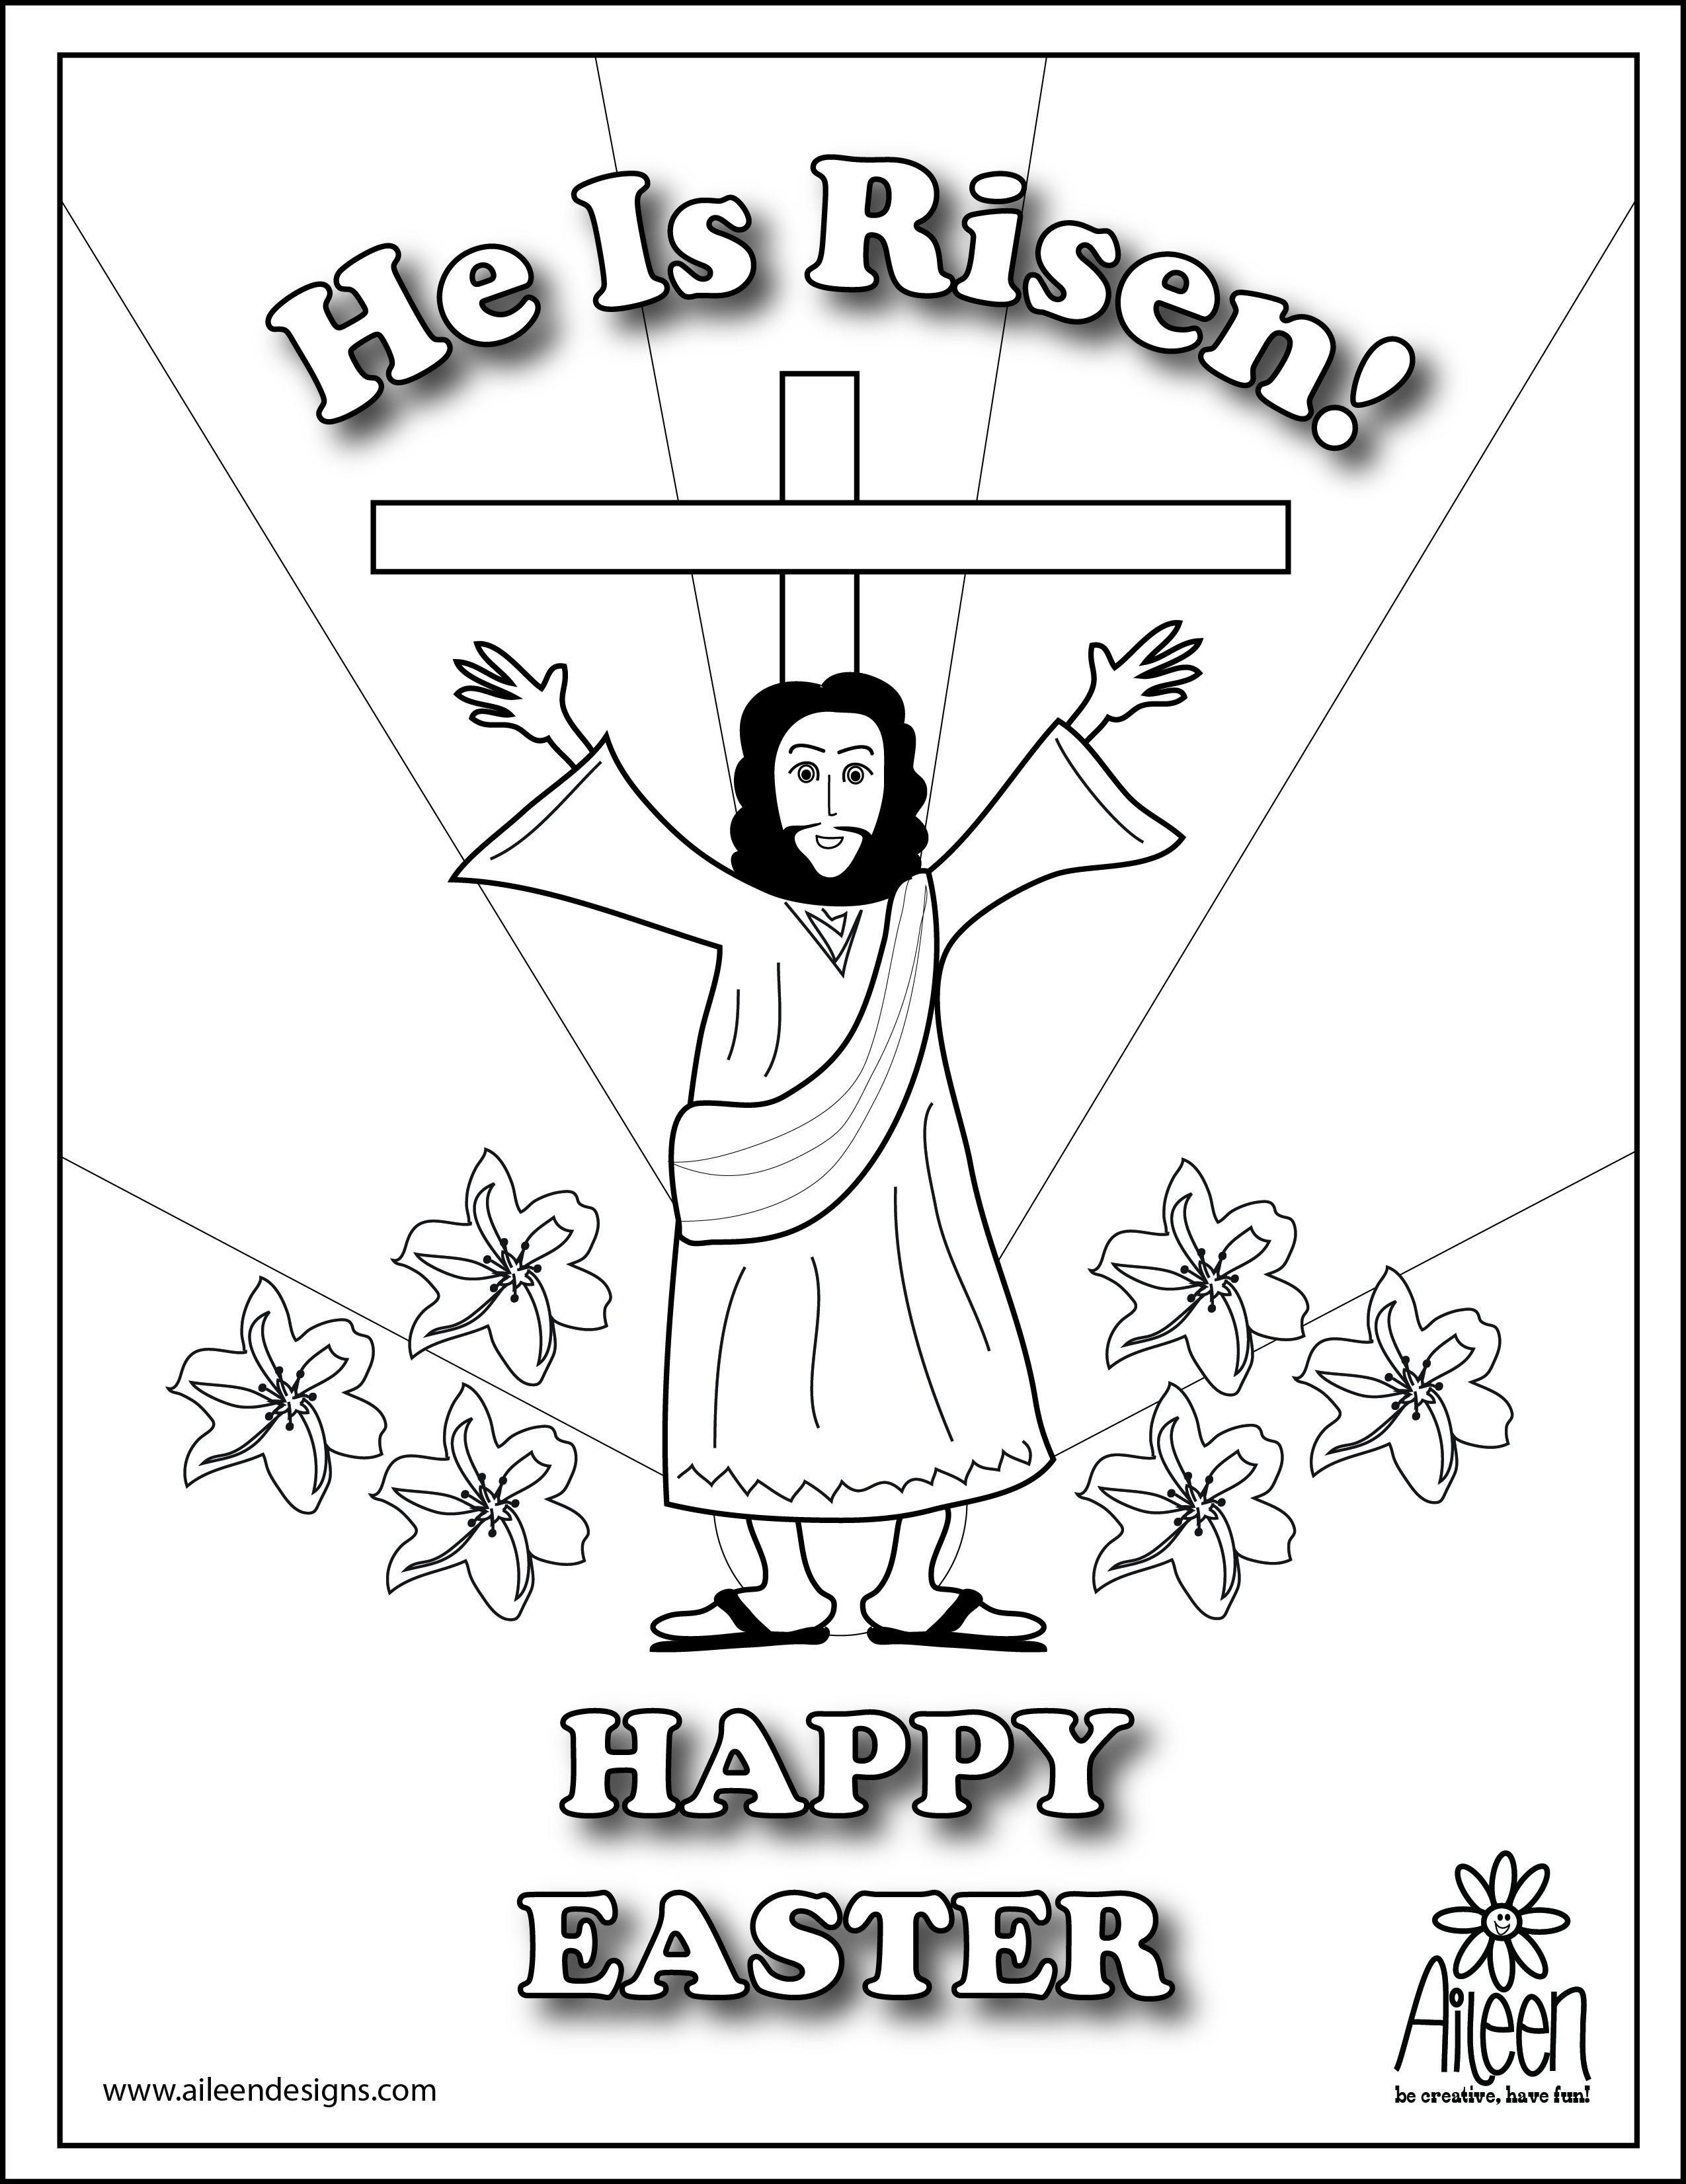 he is risen coloring page - coloring pages happy easter